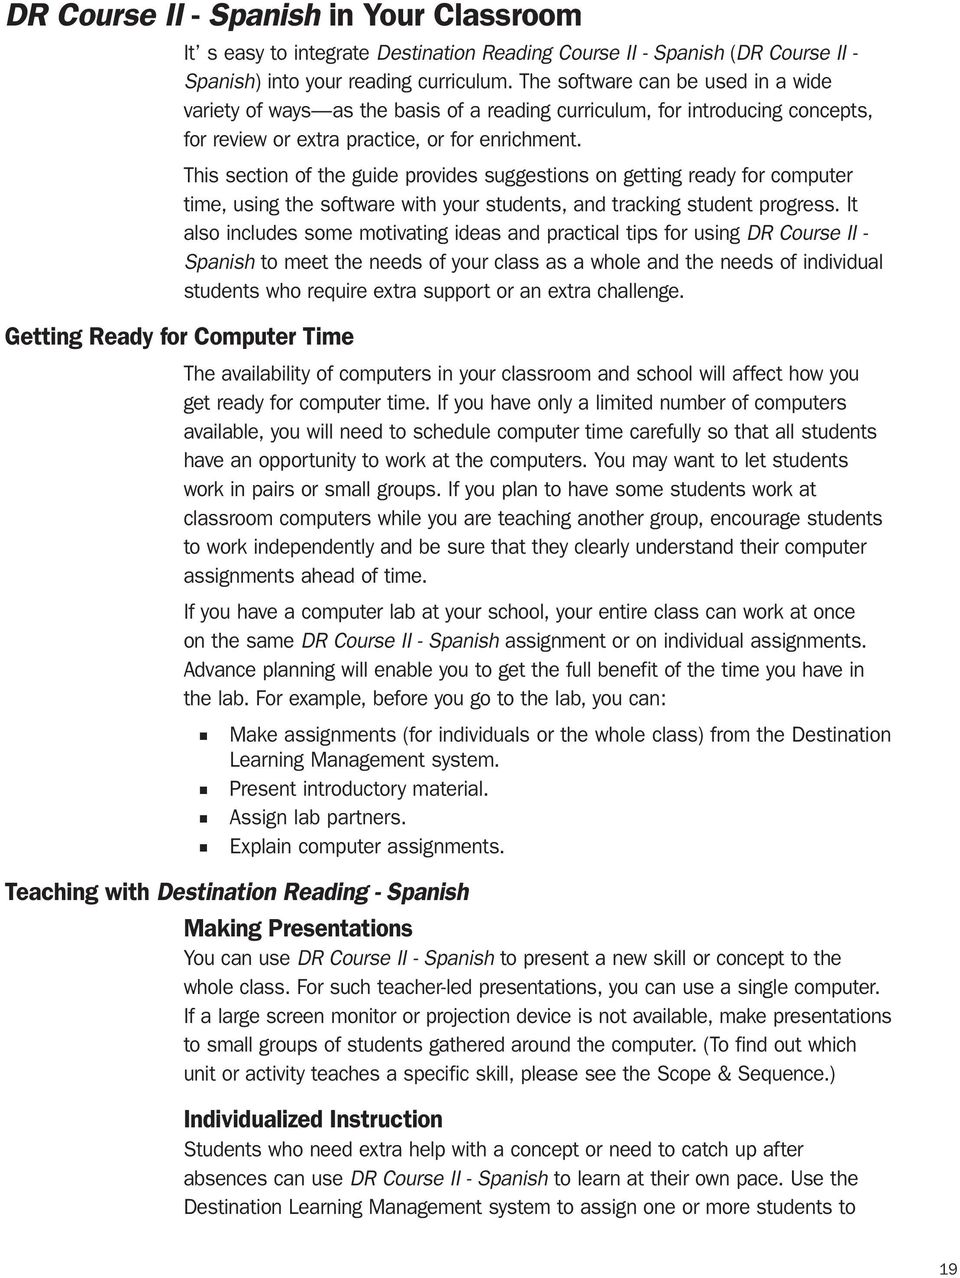 This section of the guide provides suggestions on getting ready for computer time, using the software with your students, and tracking student progress.